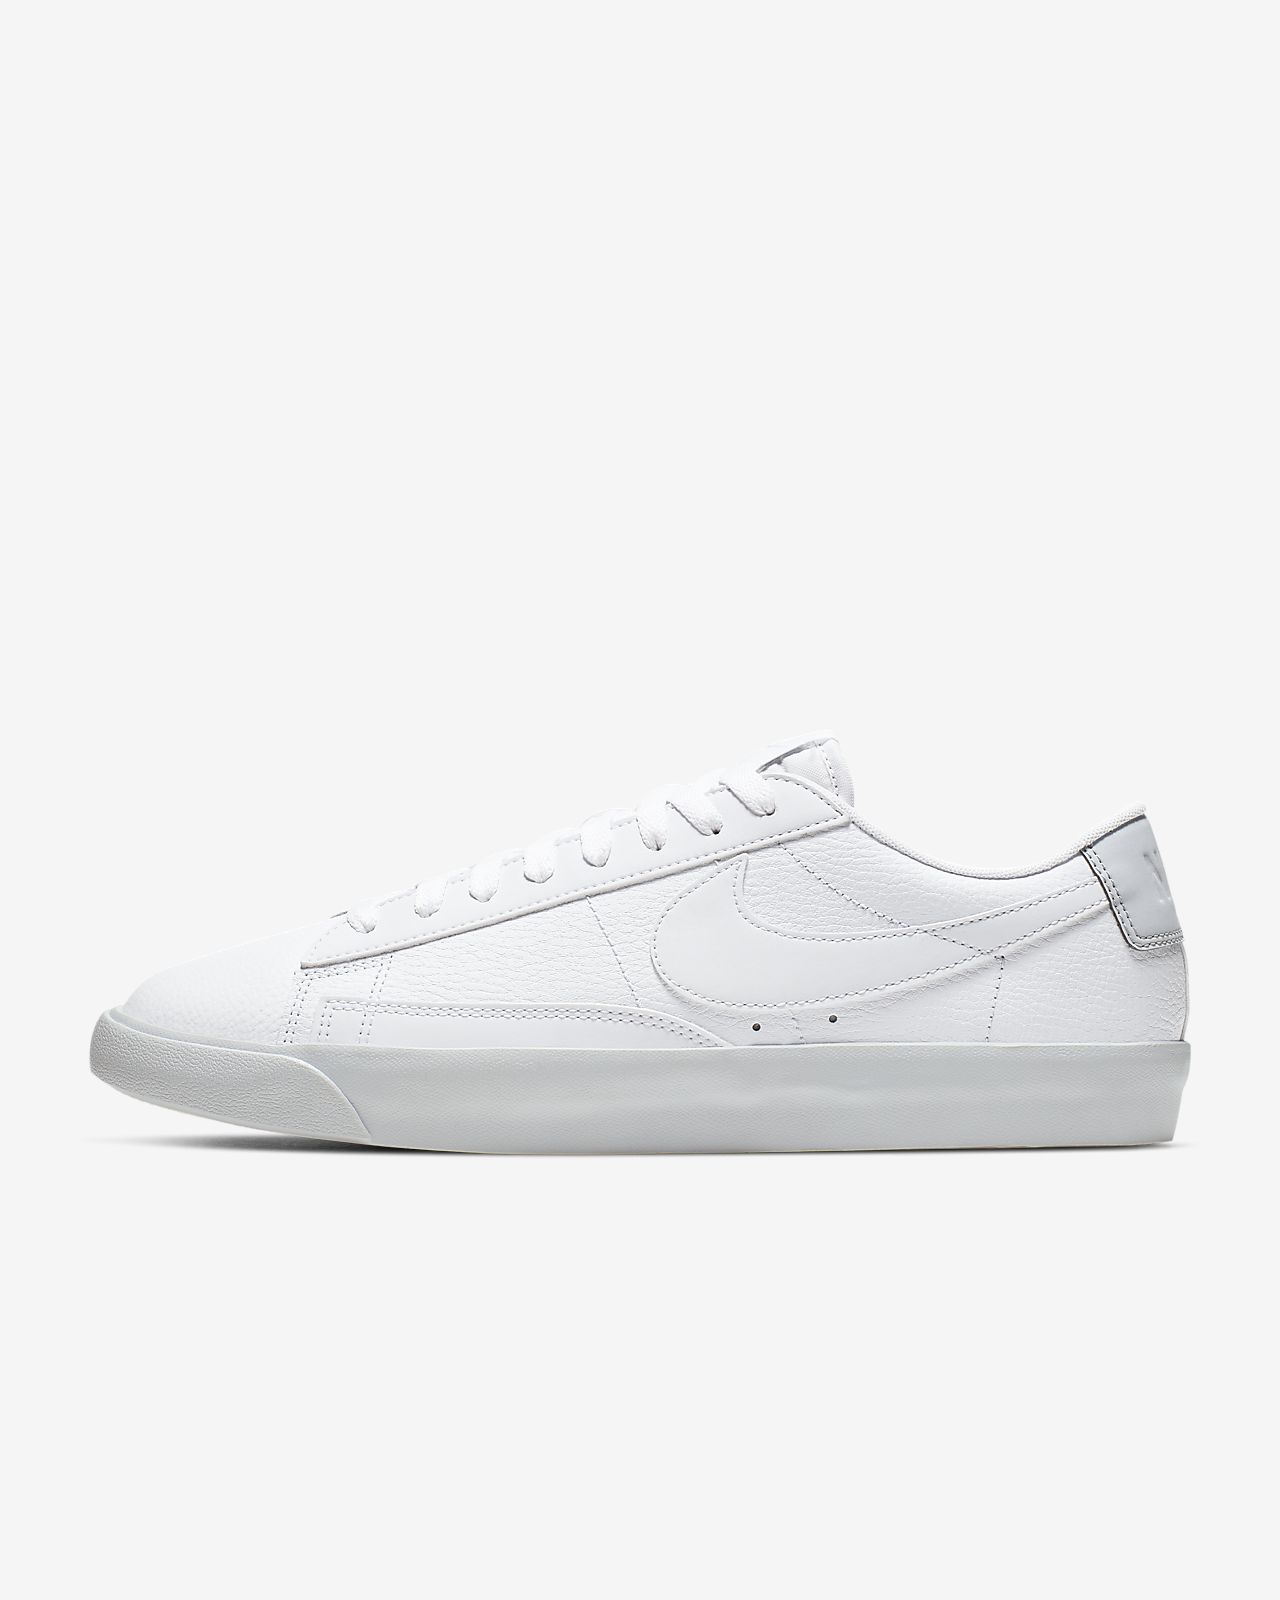 designer fashion 8b35d 94194 Nike Blazer Low LX Men's Shoe